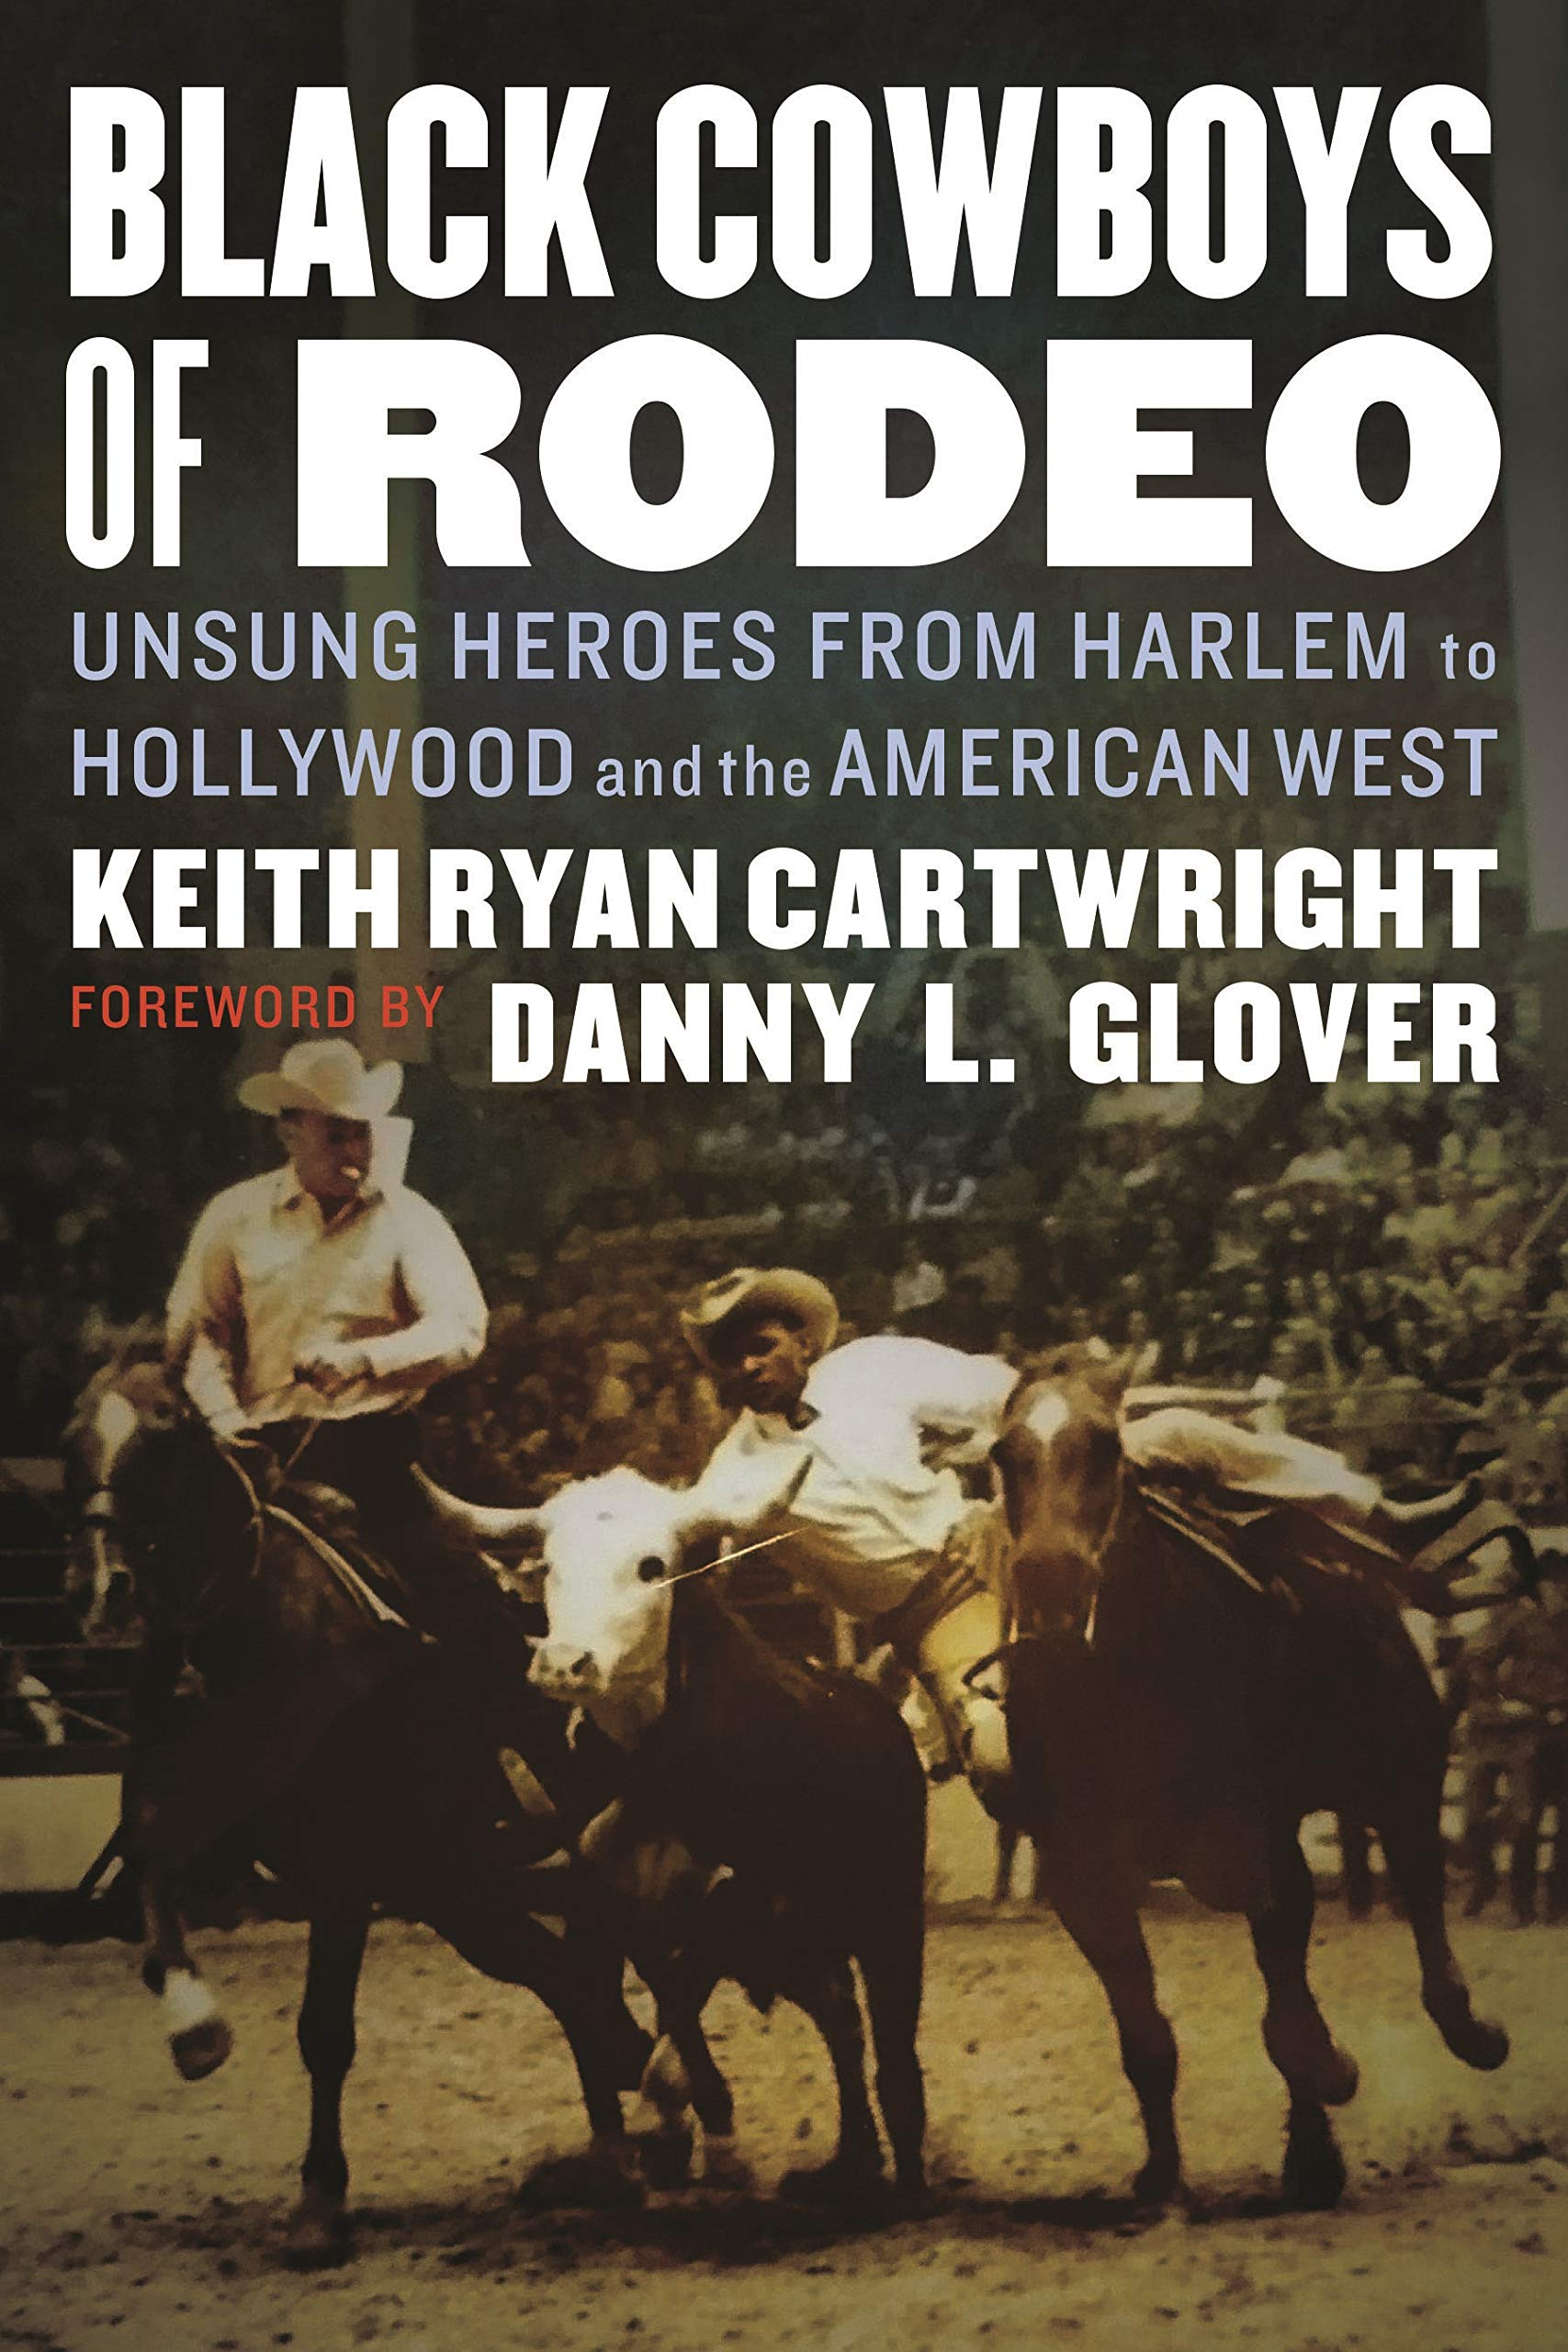 Black Cowboys of Rodeo: Unsung Heroes from Harlem to Hollywood and the American West